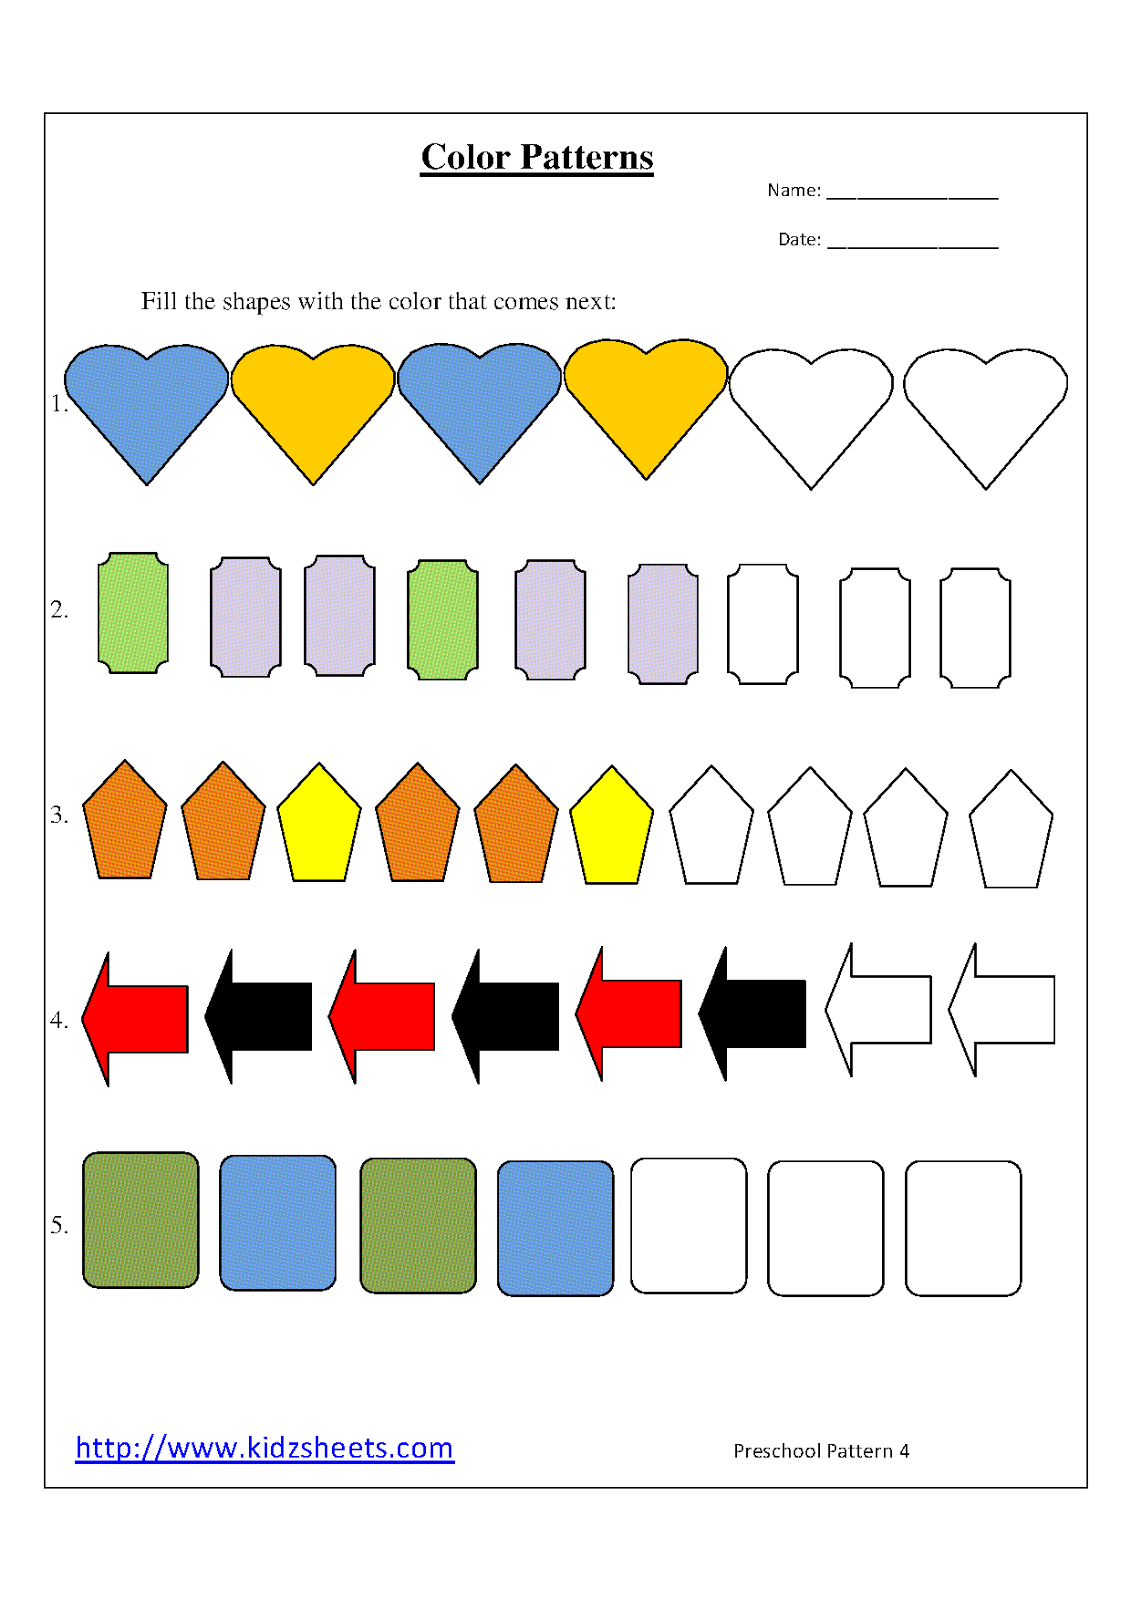 Kidz Worksheets Preschool Color Patterns Worksheet4 – Preschool Pattern Worksheets